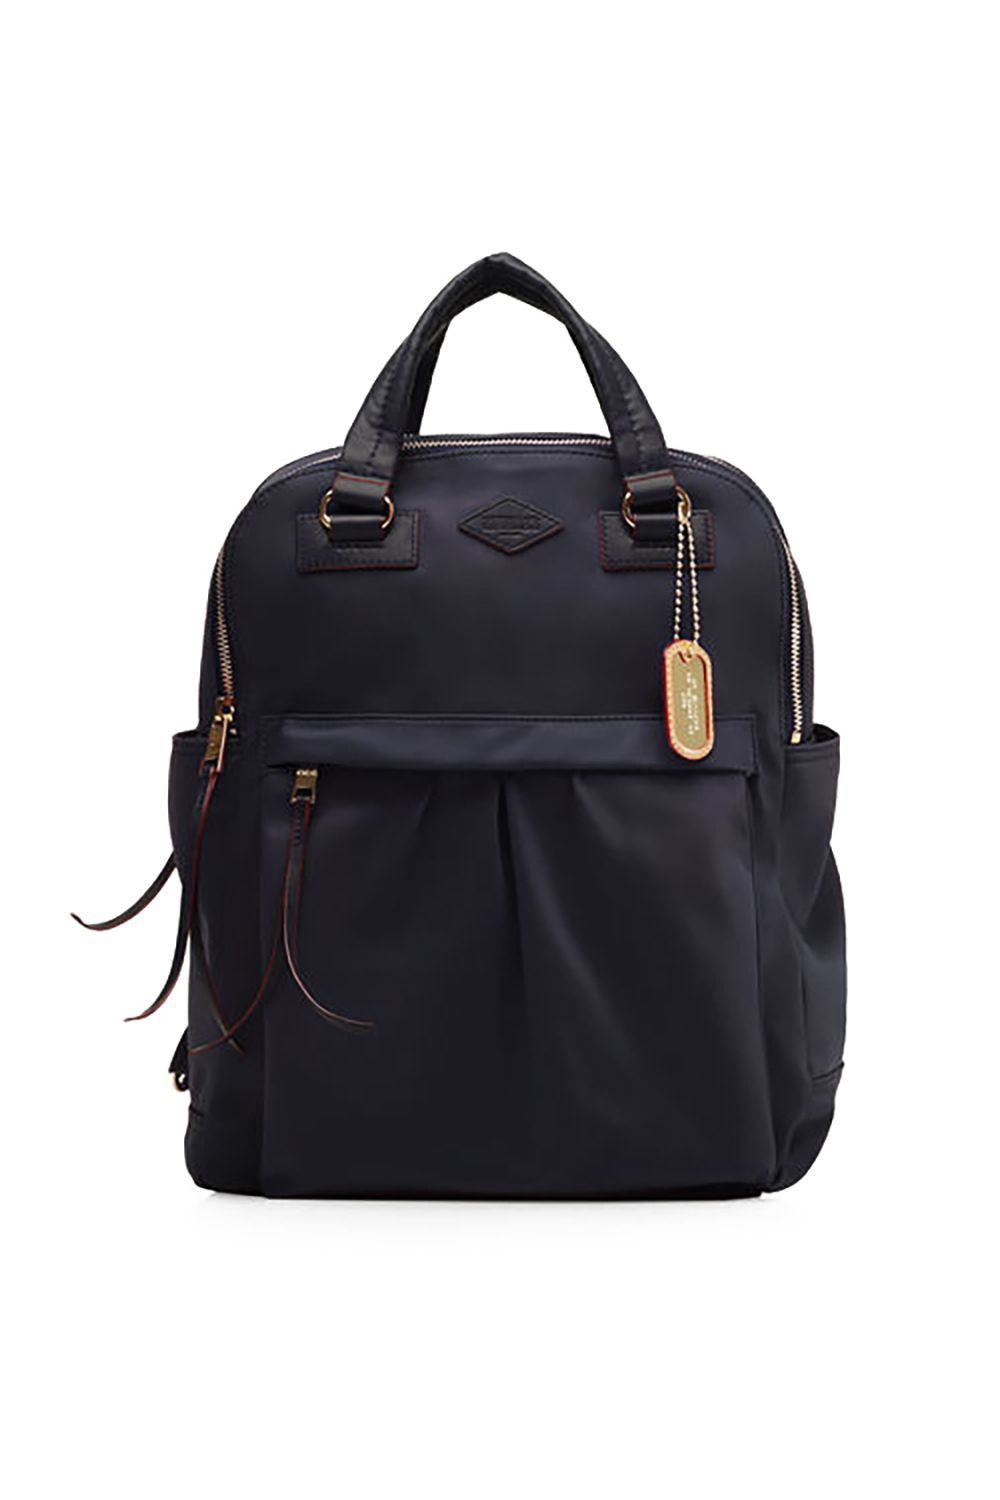 2d8a05a2d 14 Cool Work Bags for Professional Women That Aren't Boring